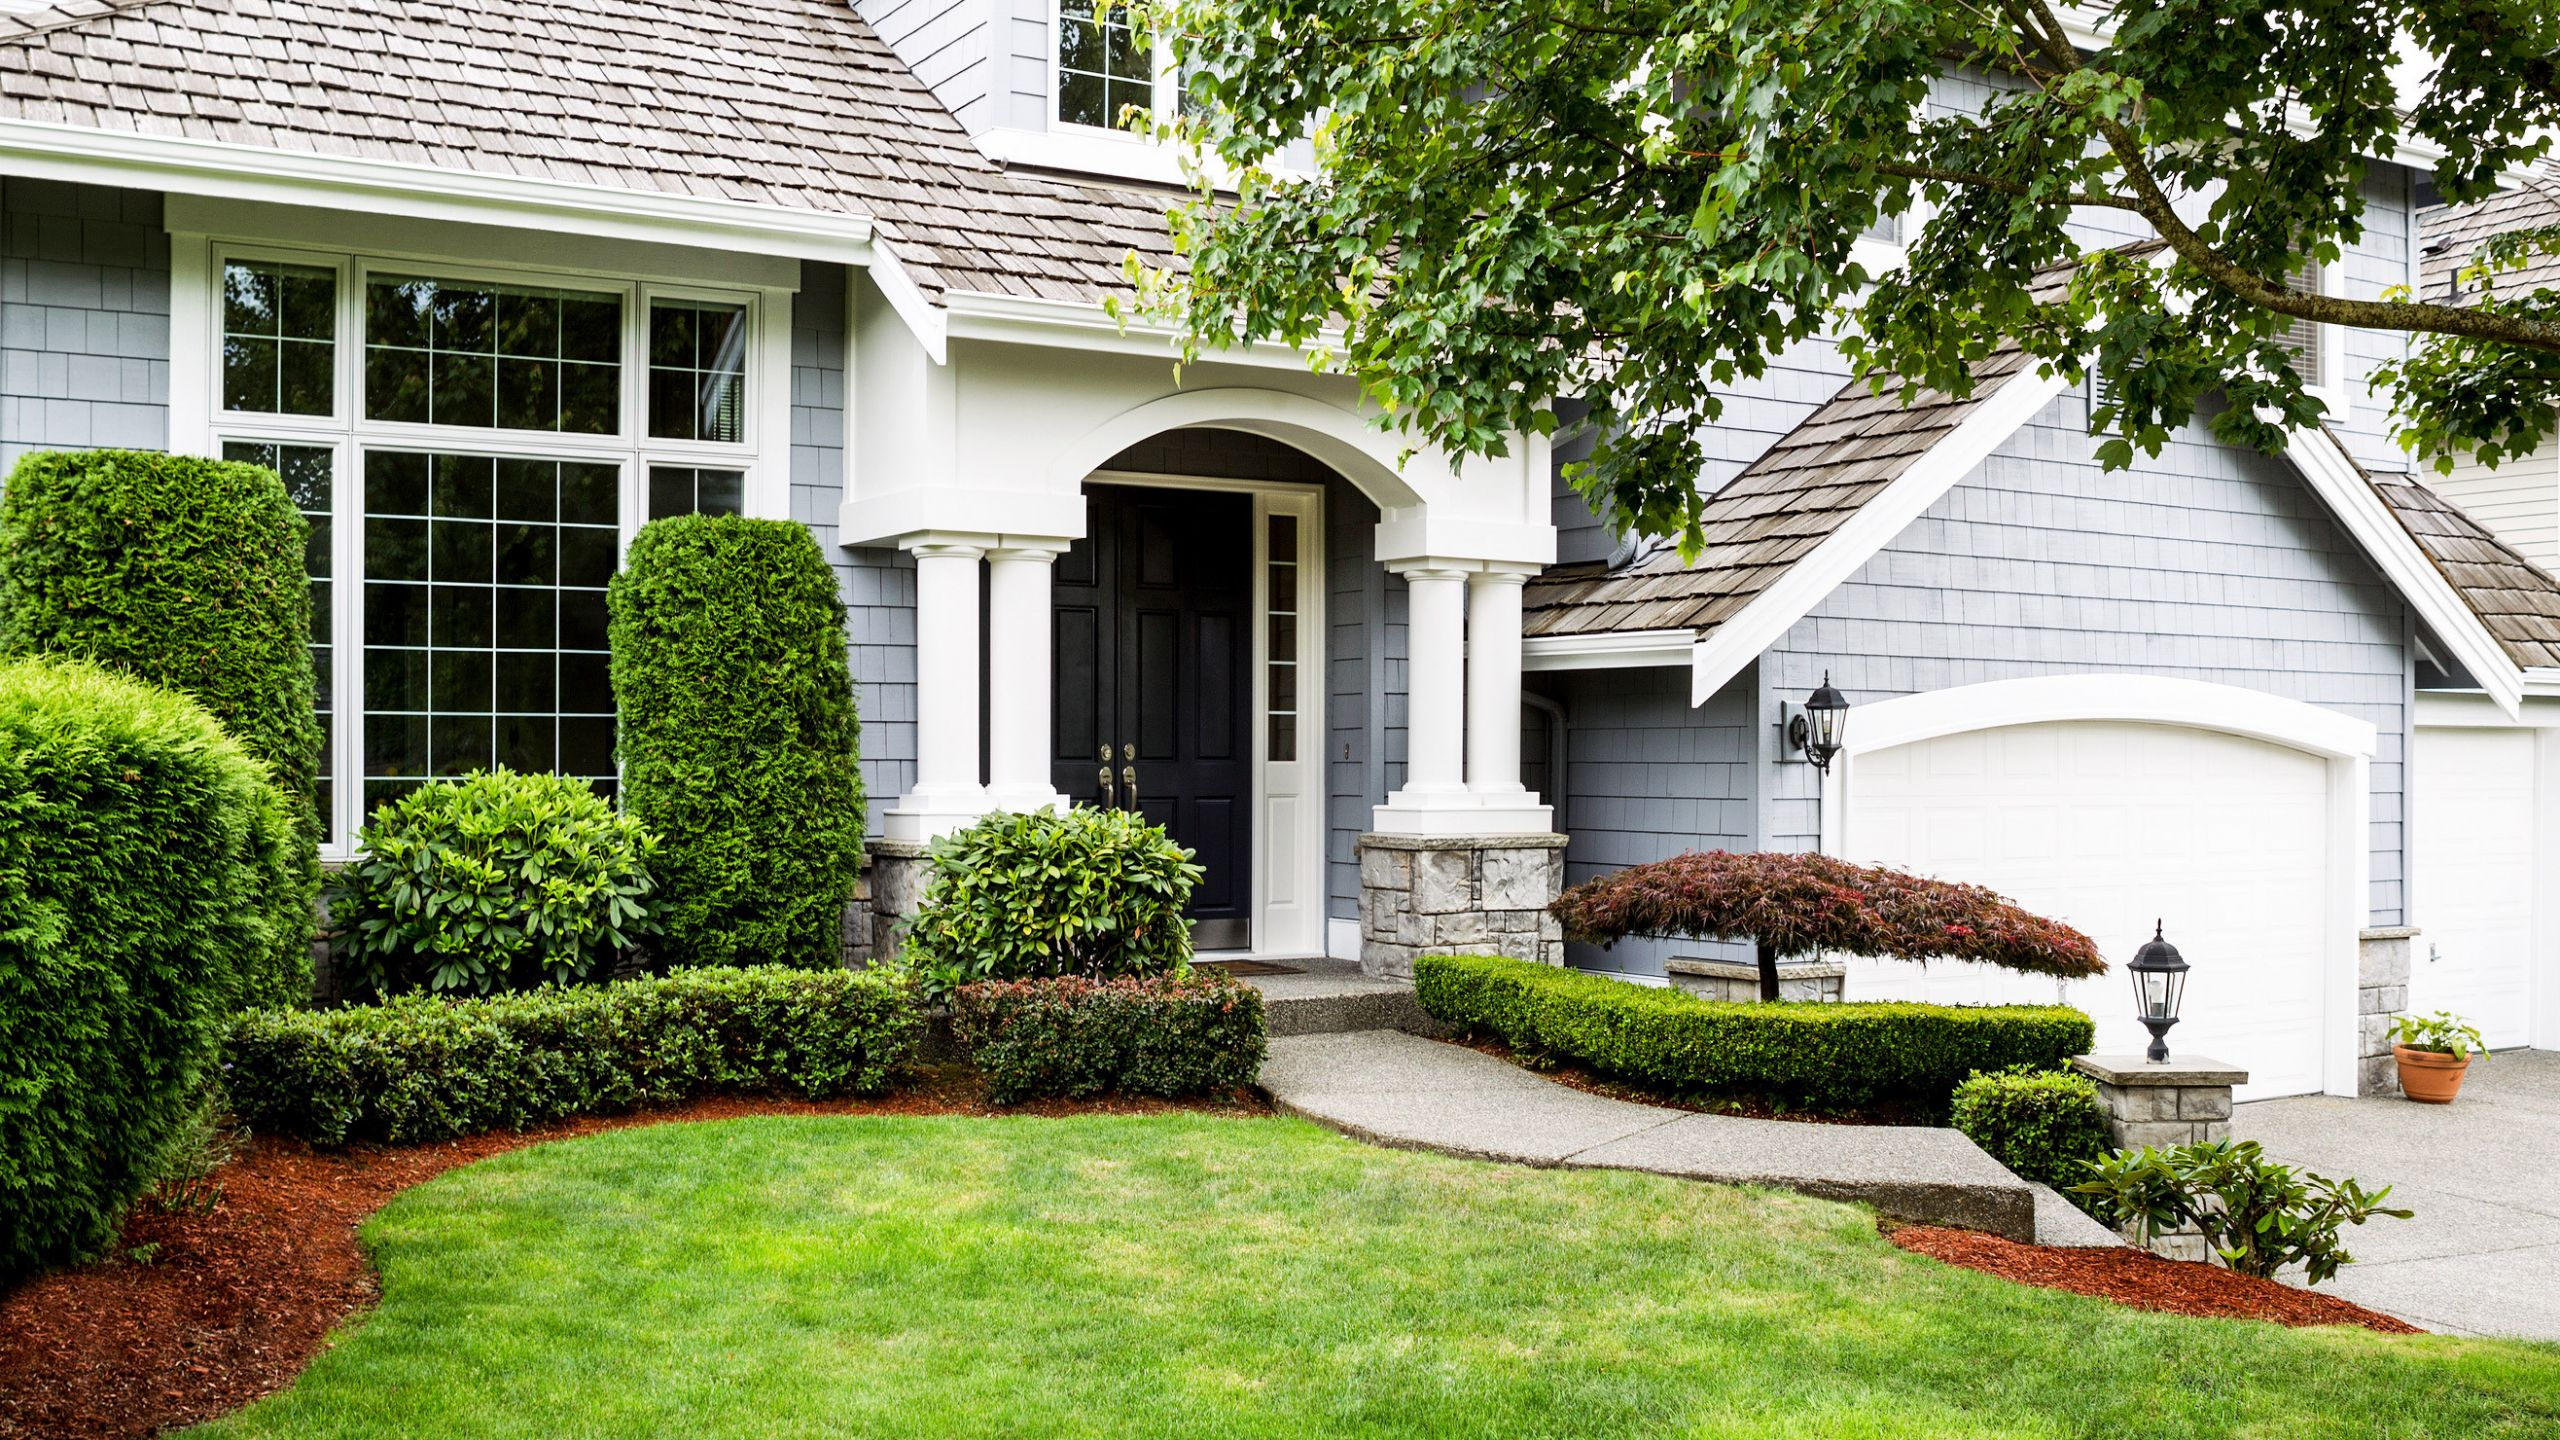 Landscape Ideas For Front Yard  Front Yard Landscaping Ideas to Try Now Before It's Too